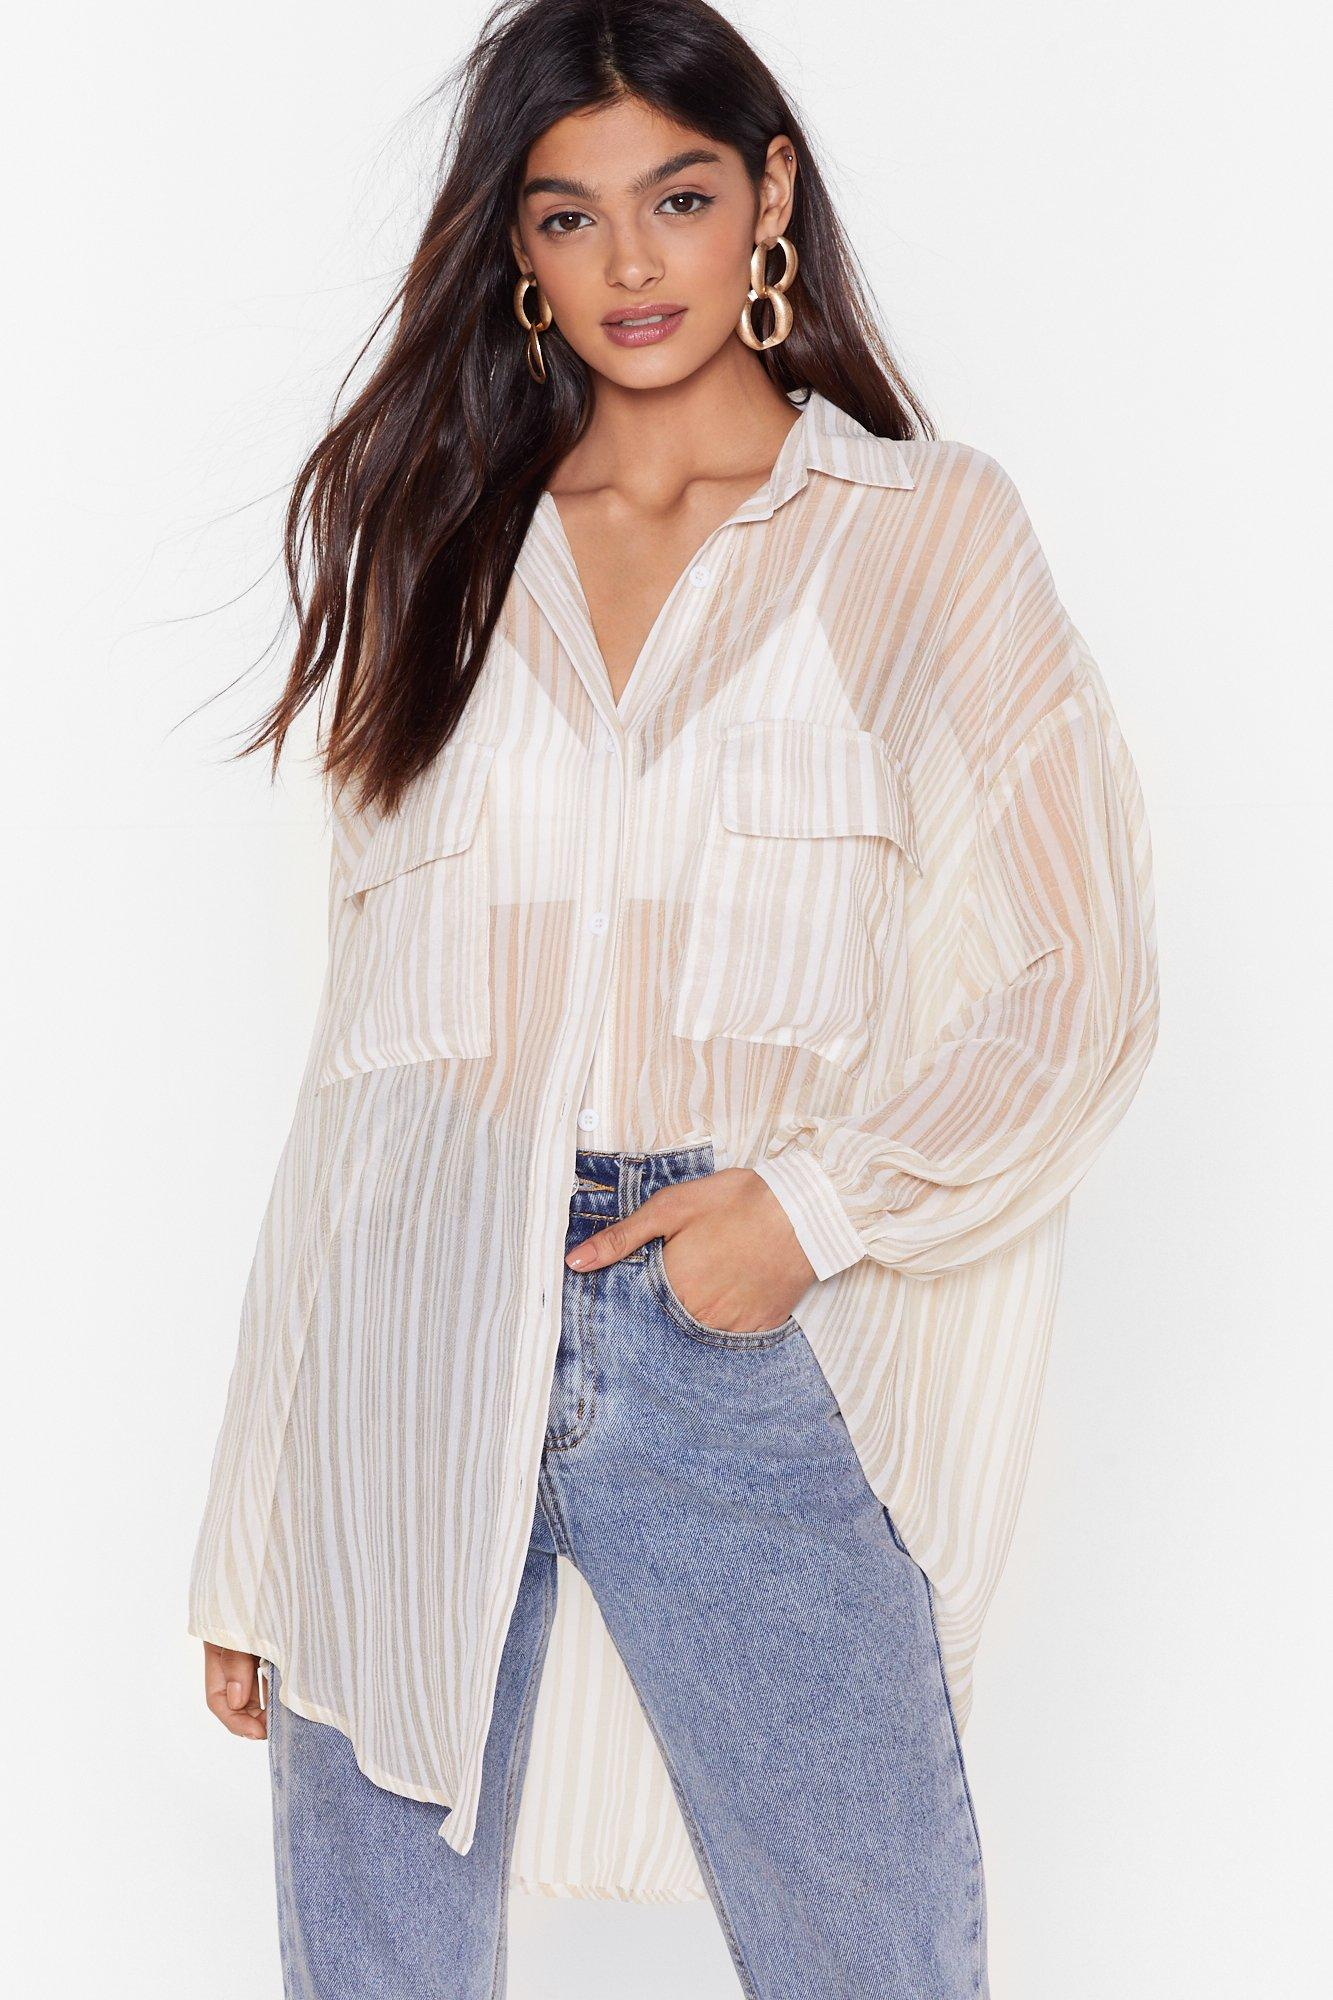 Image of Shirt It Here First Oversized Striped Shirt